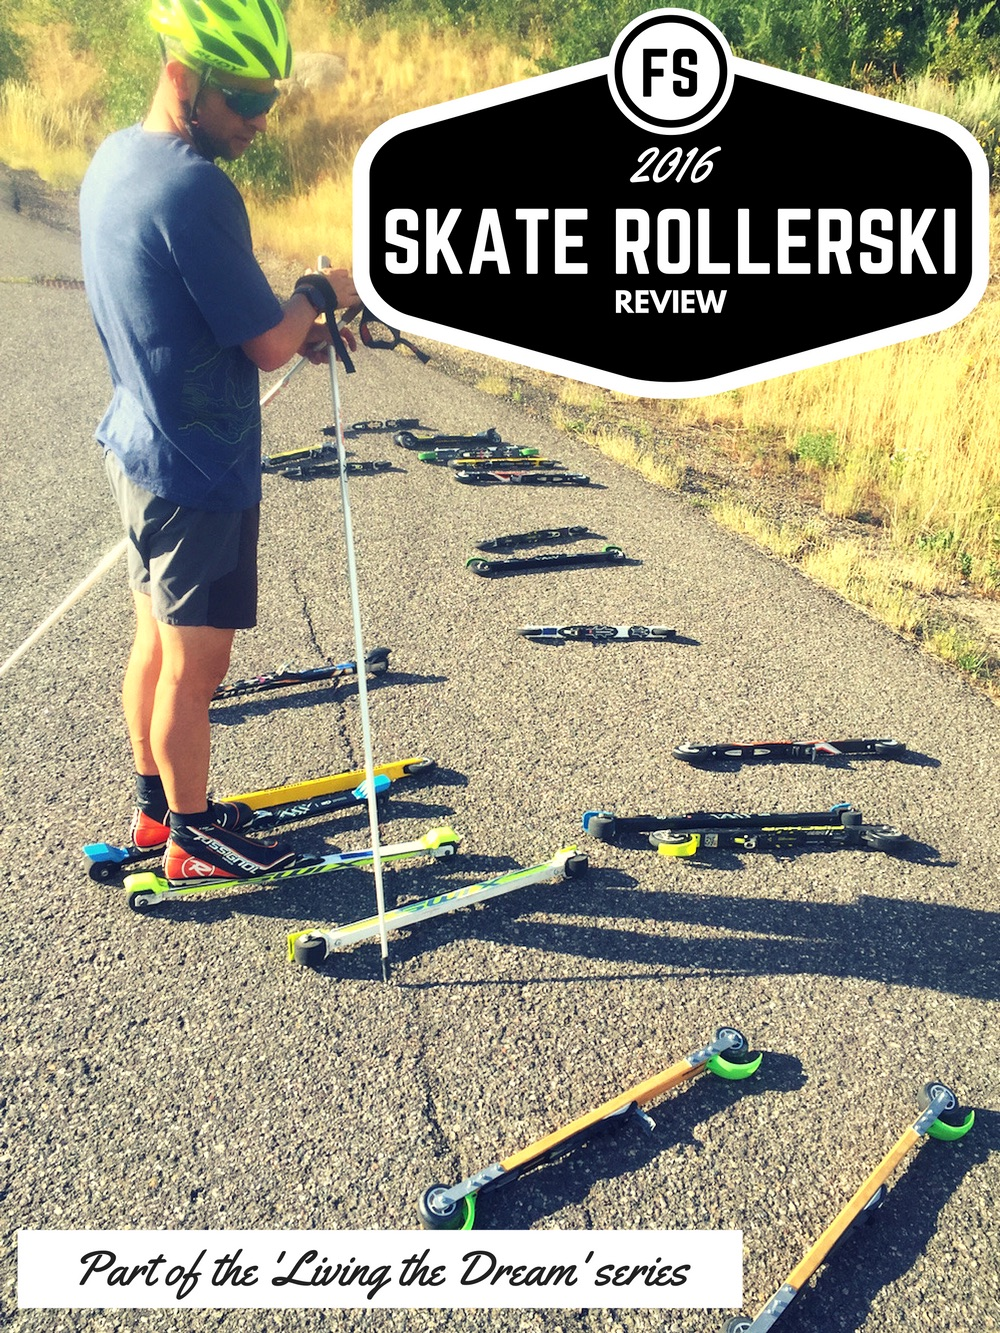 https://fasterskier.com/wp-content/blogs.dir/1/files/2016/09/ROLLERSKI.jpg